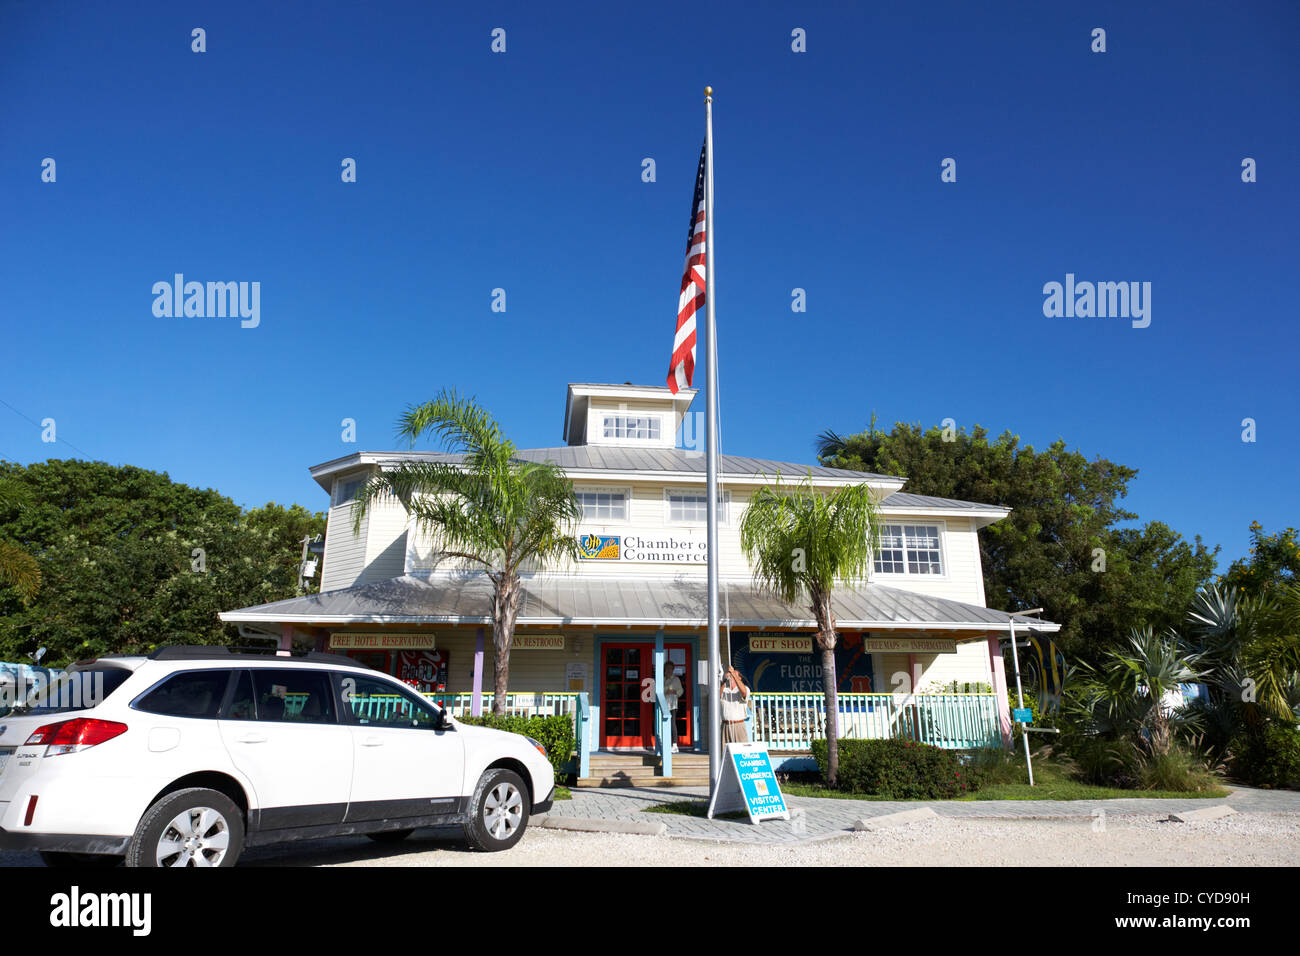 raising the american flag on a flagpole outside the chamber of commerce building in key largo florida keys usa - Stock Image